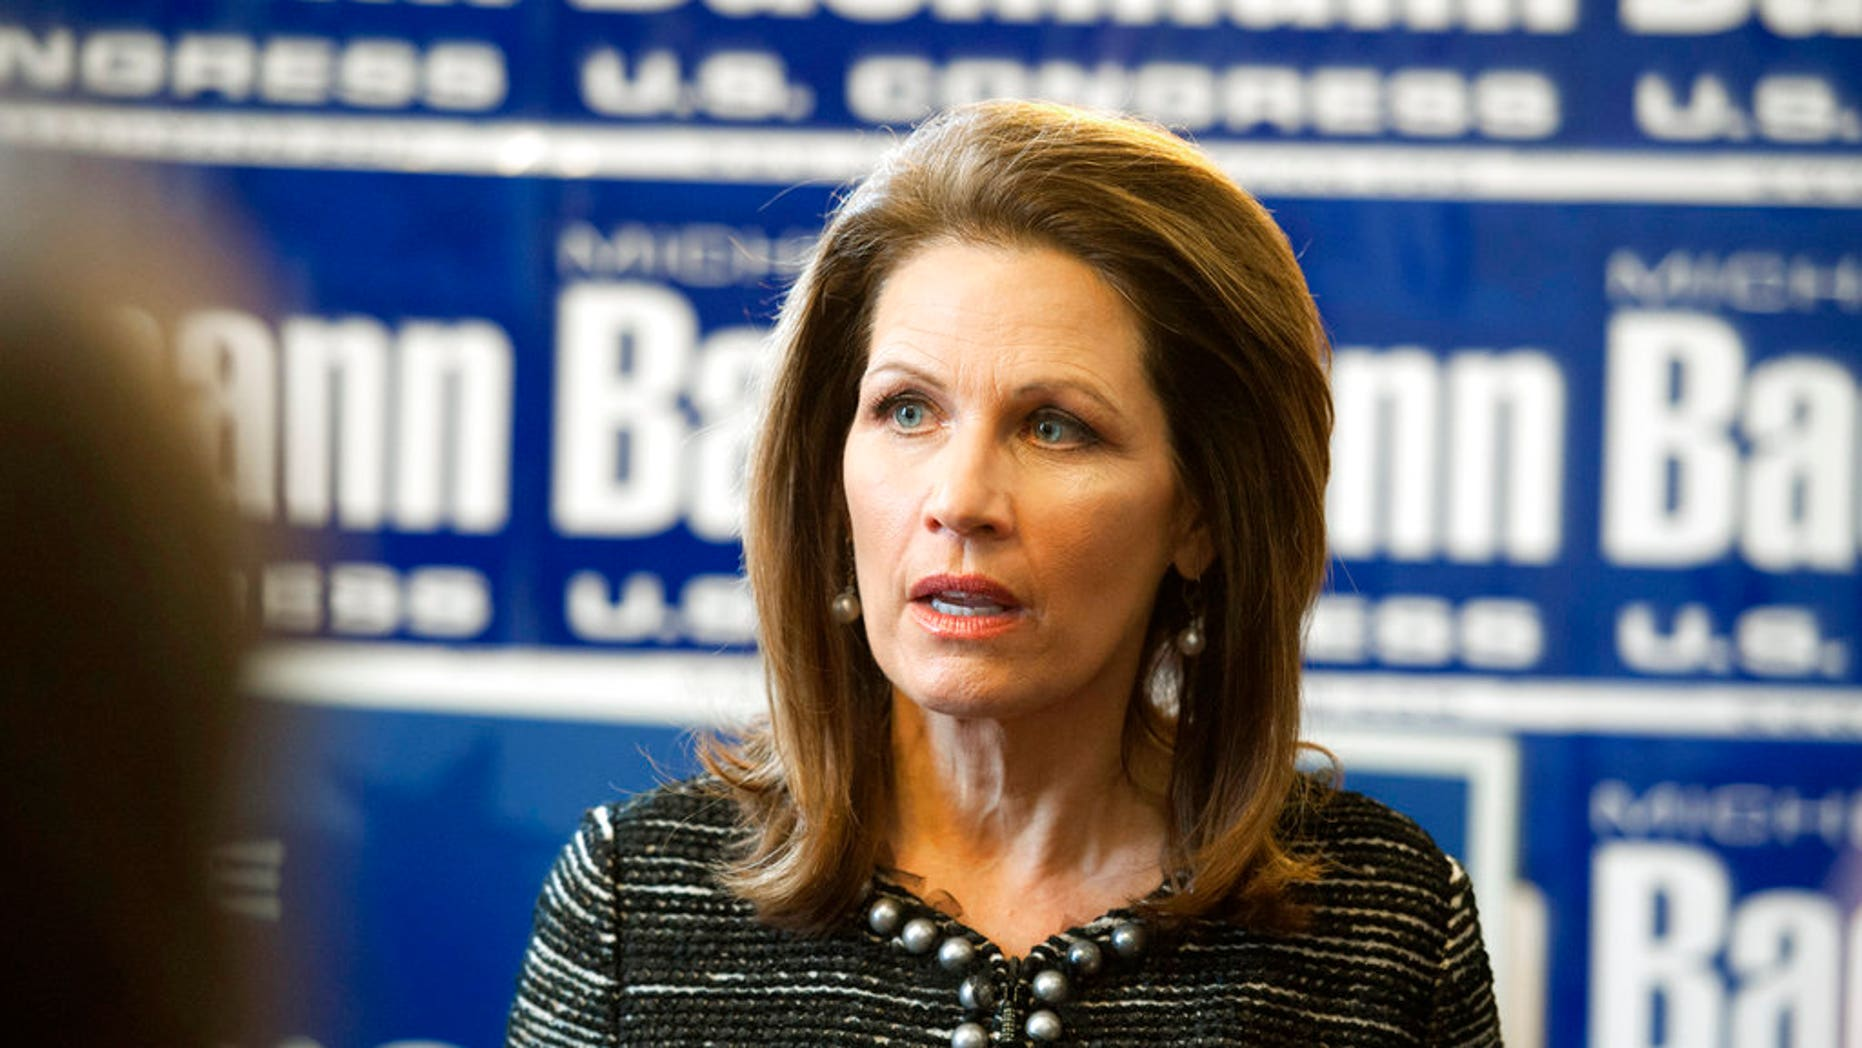 Former Minnesota congresswoman Michele Bachmann said Tuesday that she's mulling the possibility of running for Al Franken's Senate seat.